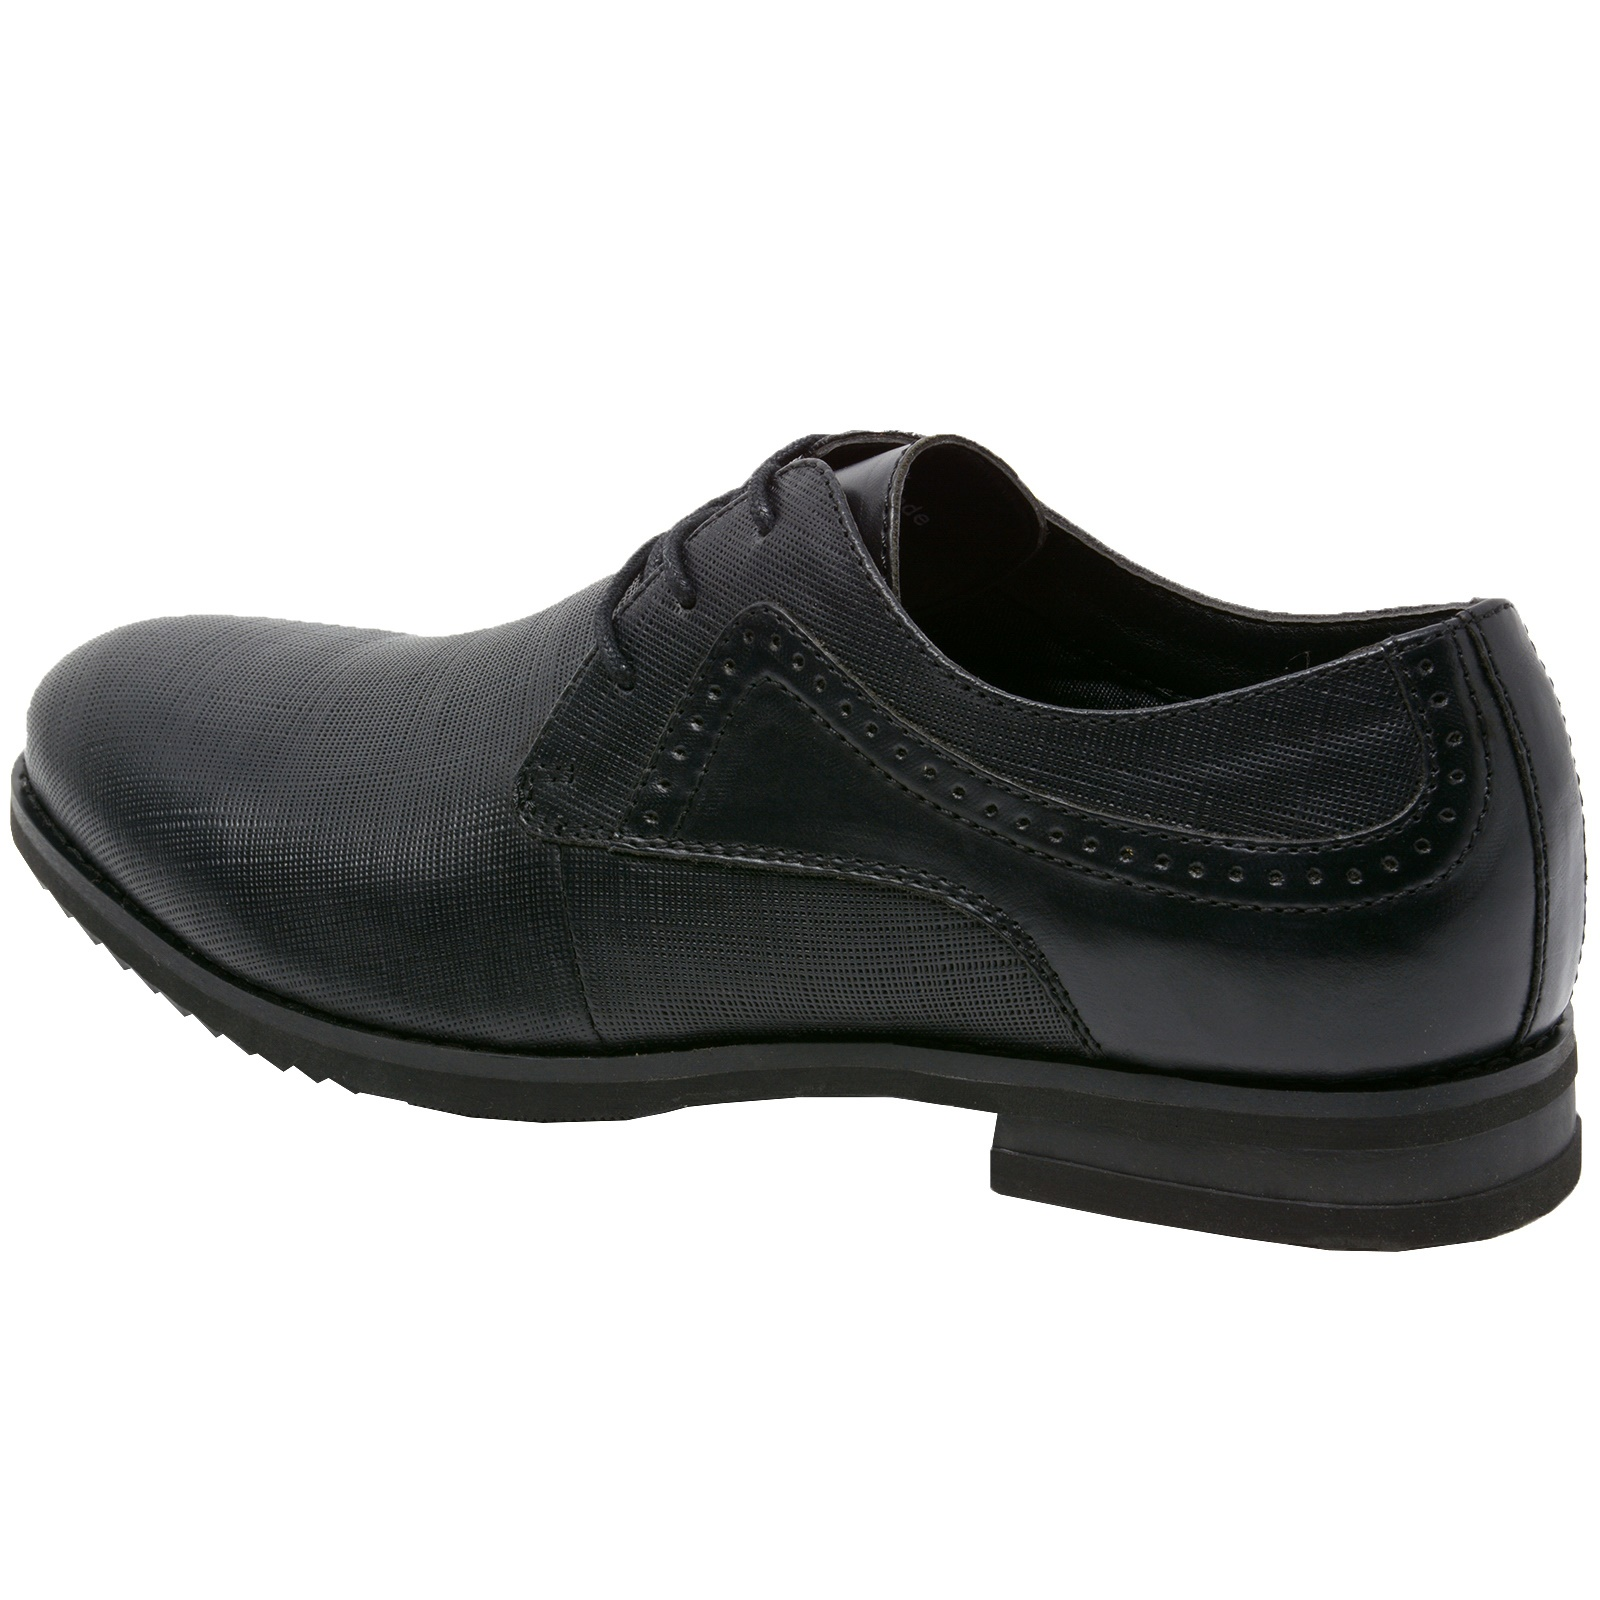 Double-Diamond-by-Alpine-Swiss-Mens-Saffiano-Leather-Lace-Up-Oxford-Dress-Shoes thumbnail 16